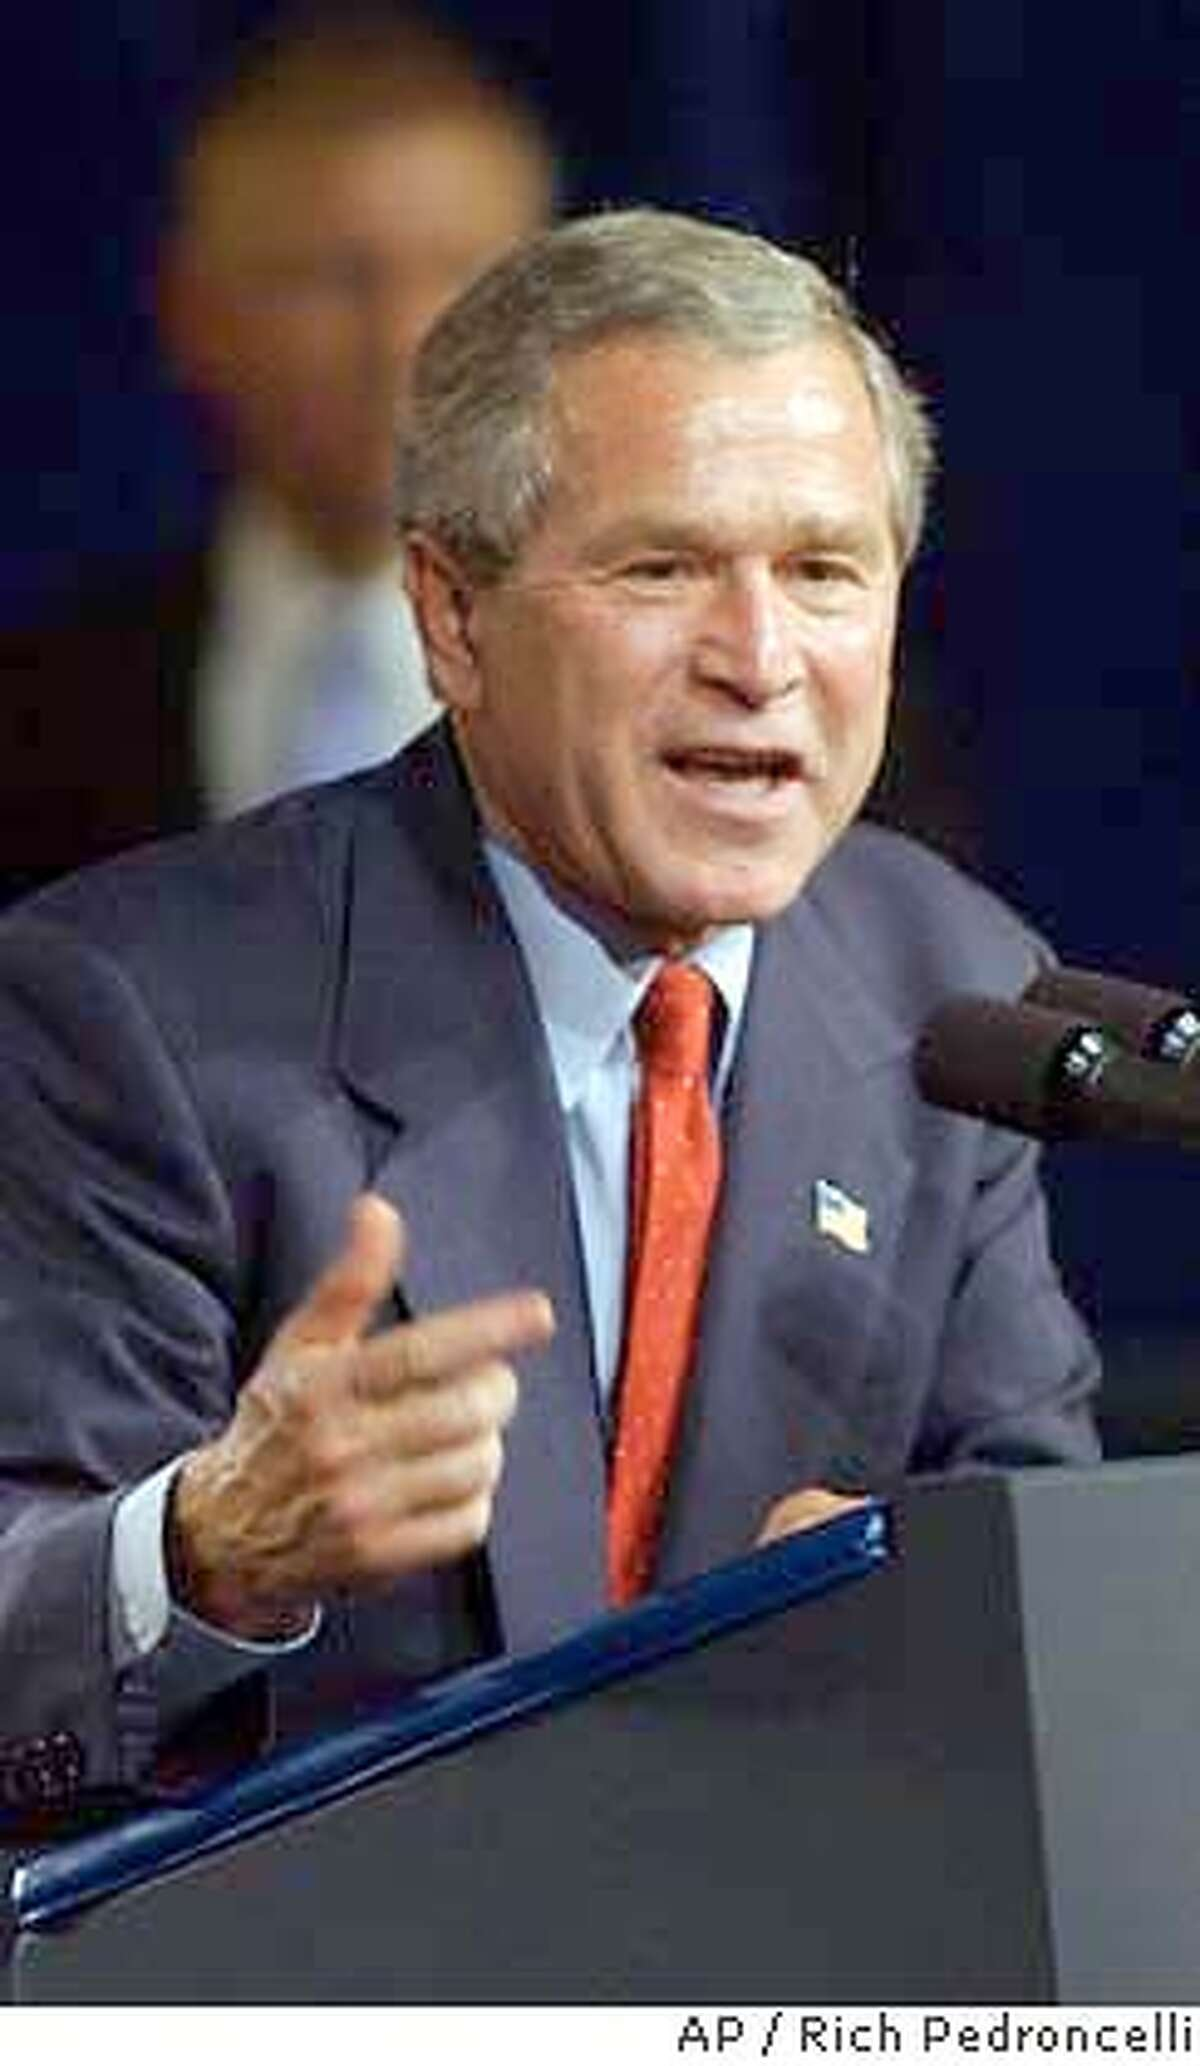 President Bush gestures as he addresses a crowd of nearly 10,000 people who attended a campaign rally at the Reno-Sparks Convention center in Reno, Nev., Friday, June 18, 2004. This was the third stop on a two-day swing through western states for the President. (AP Photo/Rich Pedroncelli)